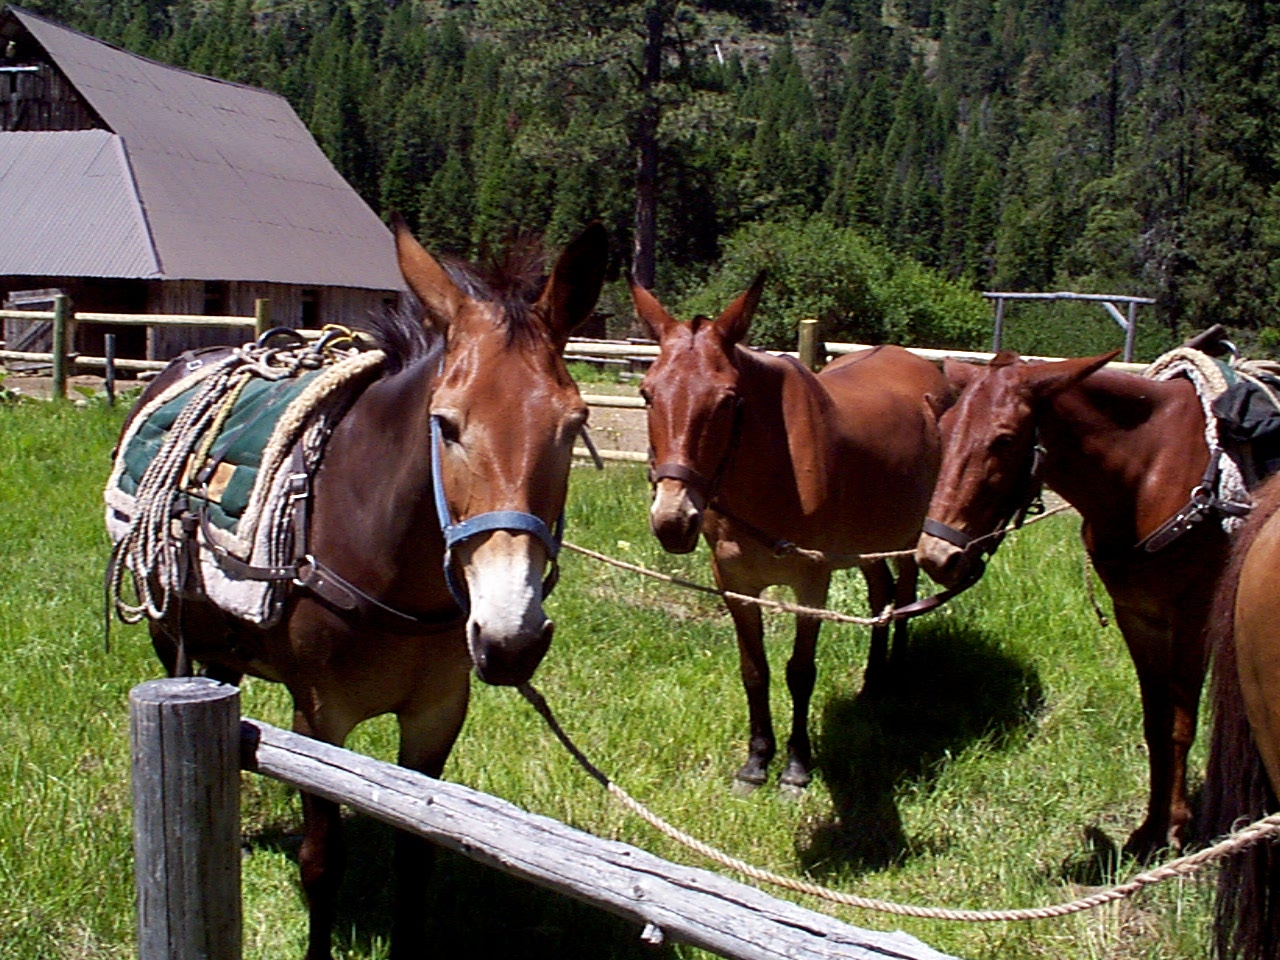 3 mules tied up to a hitching rail with an old barn in the background